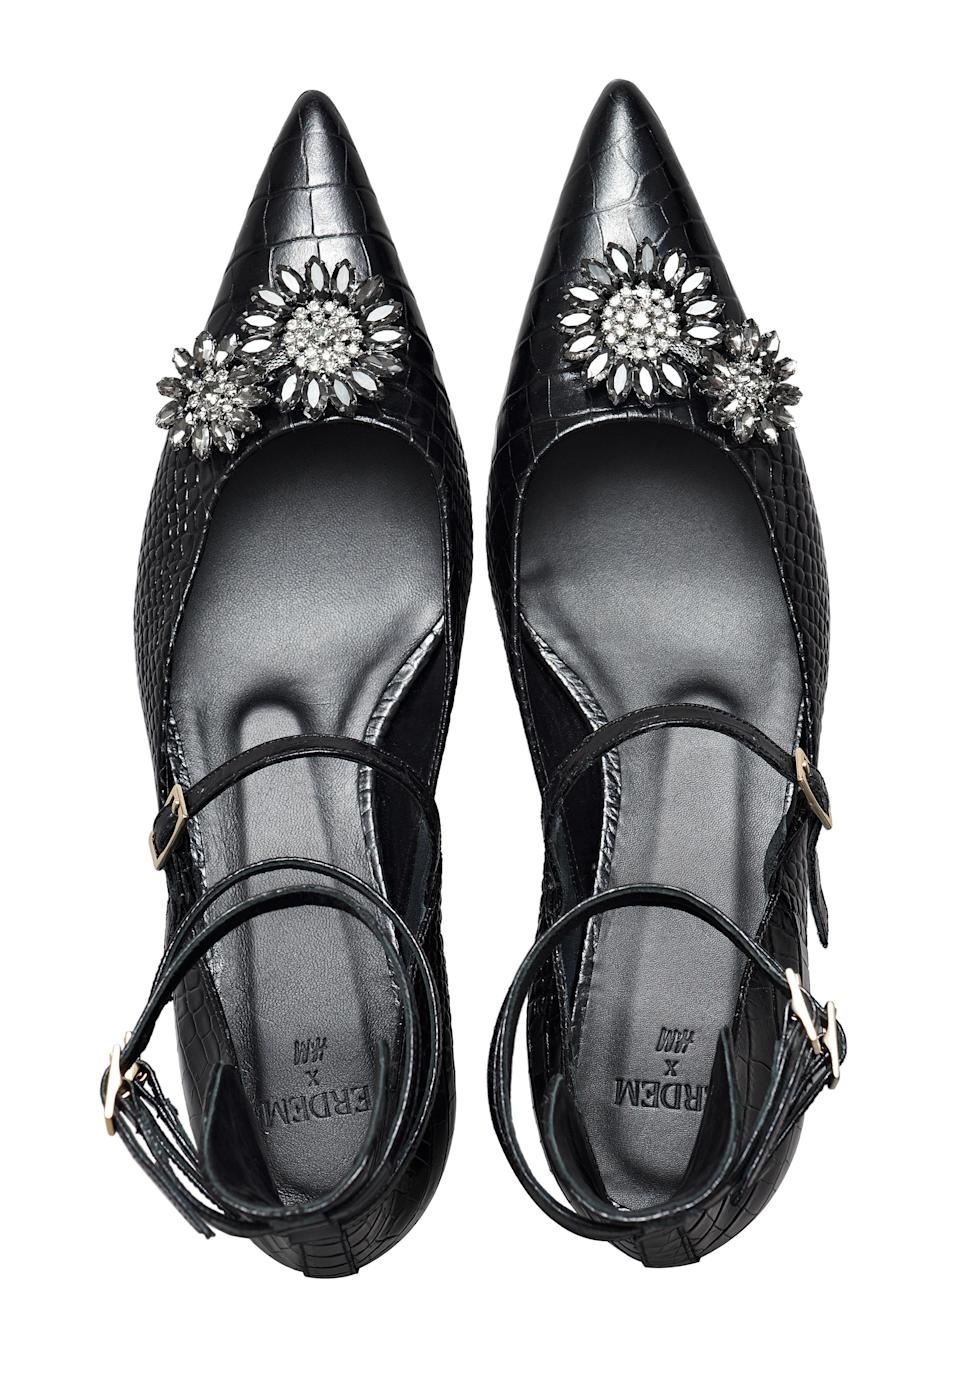 """<p>What better way to welcome the festive season than with some bejewelled footwear? We'll be teaming ours with everything from Erdem's floral ballgown skirt to the hoodie. <em><a rel=""""nofollow noopener"""" href=""""http://www2.hm.com/en_gb/index.html"""" target=""""_blank"""" data-ylk=""""slk:H&M"""" class=""""link rapid-noclick-resp"""">H&M</a>, £139.99</em> </p>"""